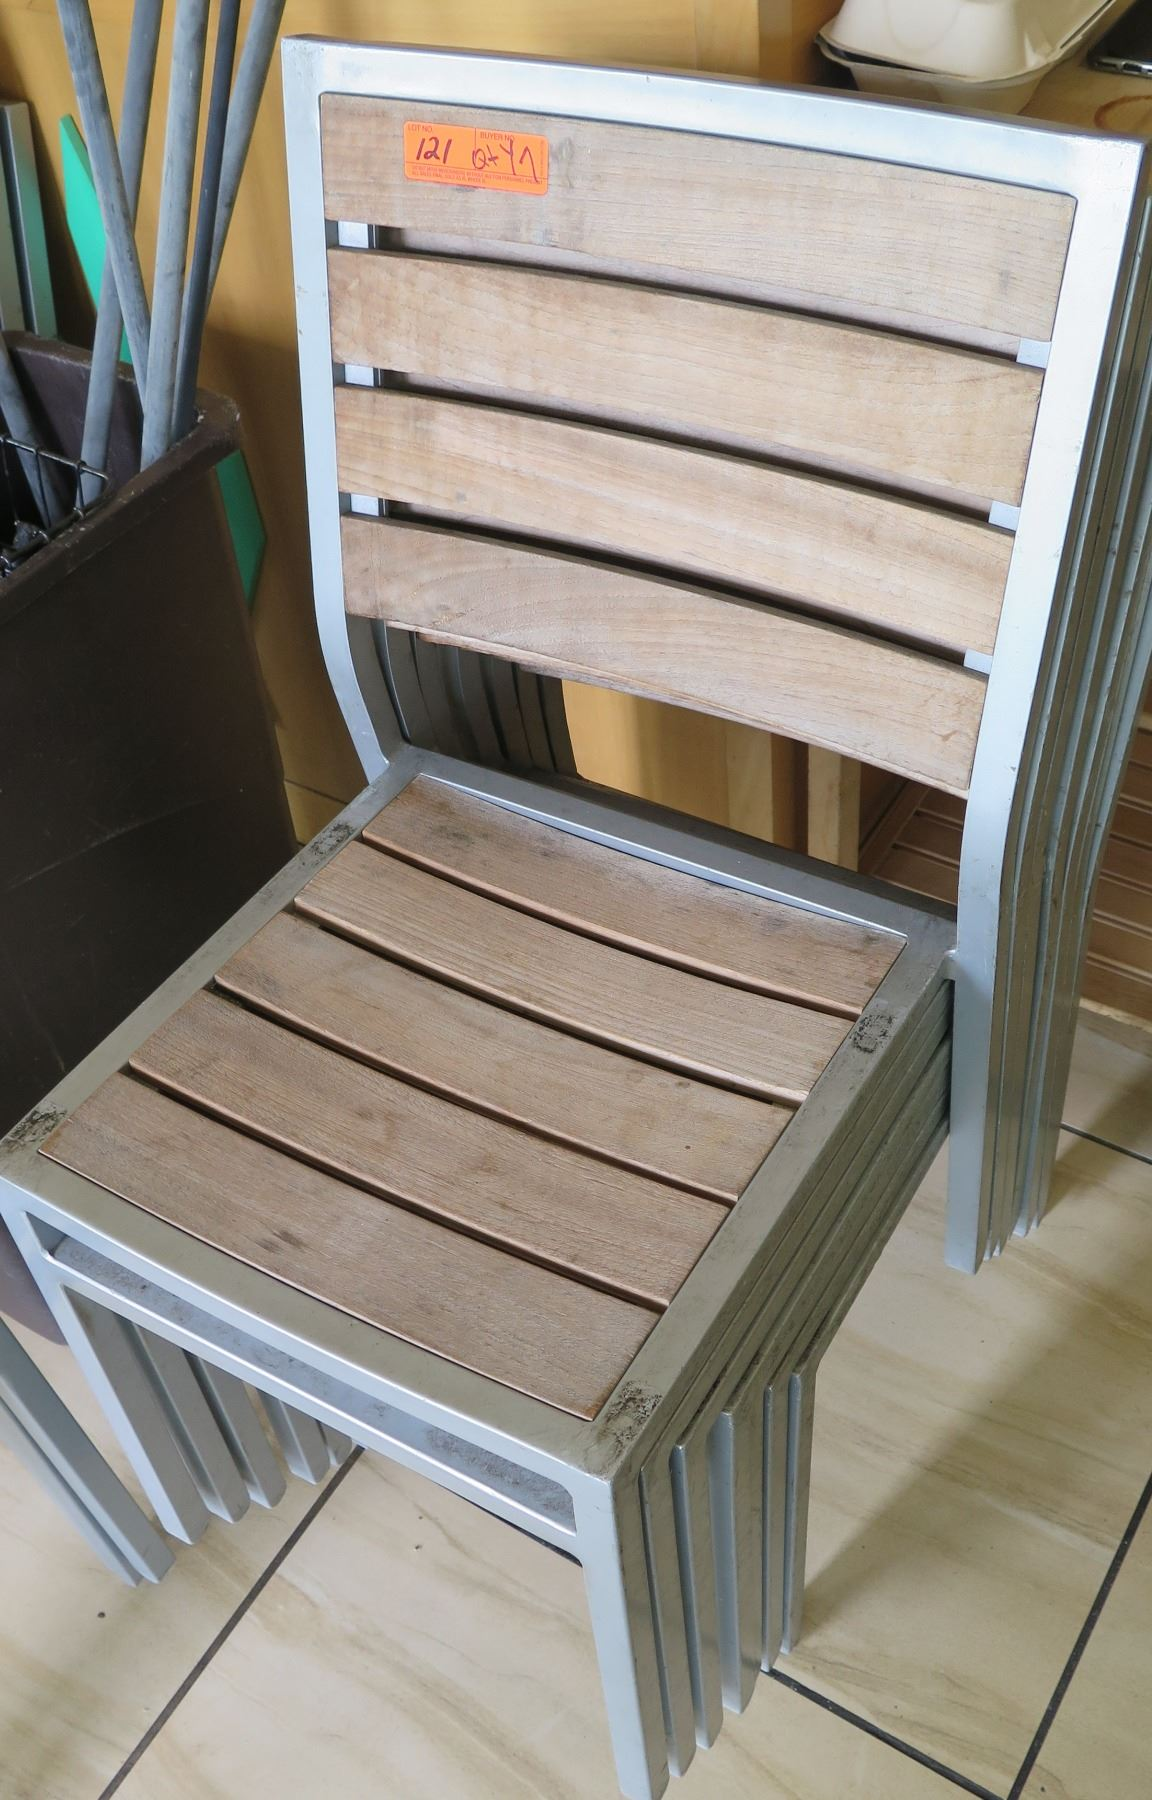 Qty 7 Aged Teak Chairs w/ Aluminum Frames - Oahu Auctions